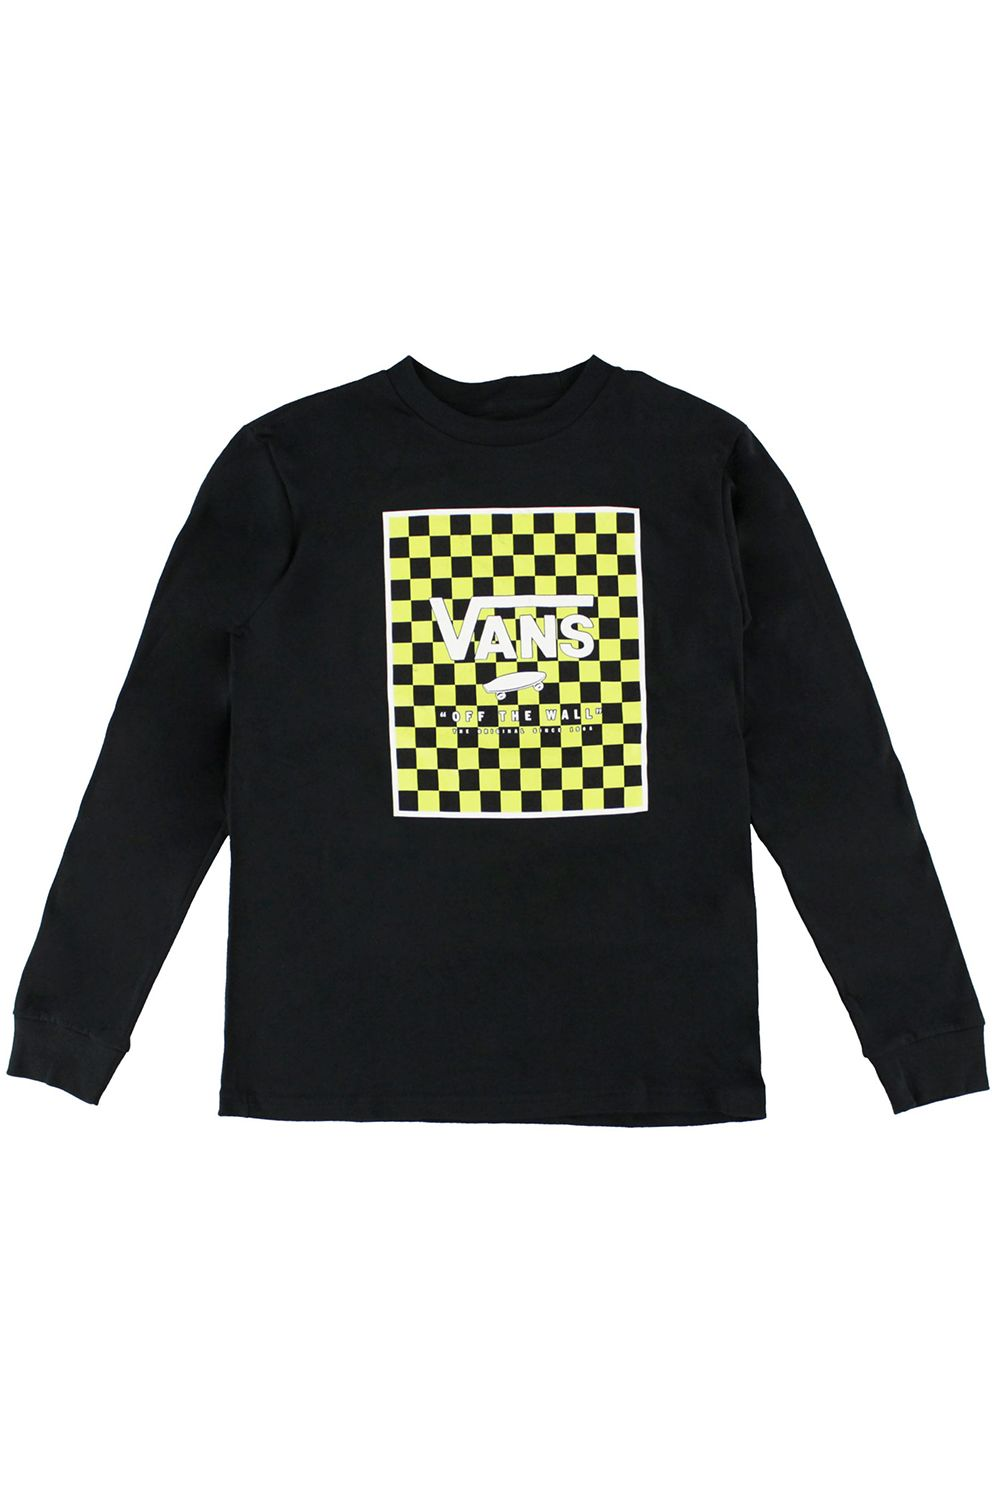 Vans L-Sleeve PRINT BOX Black/Sharp Green